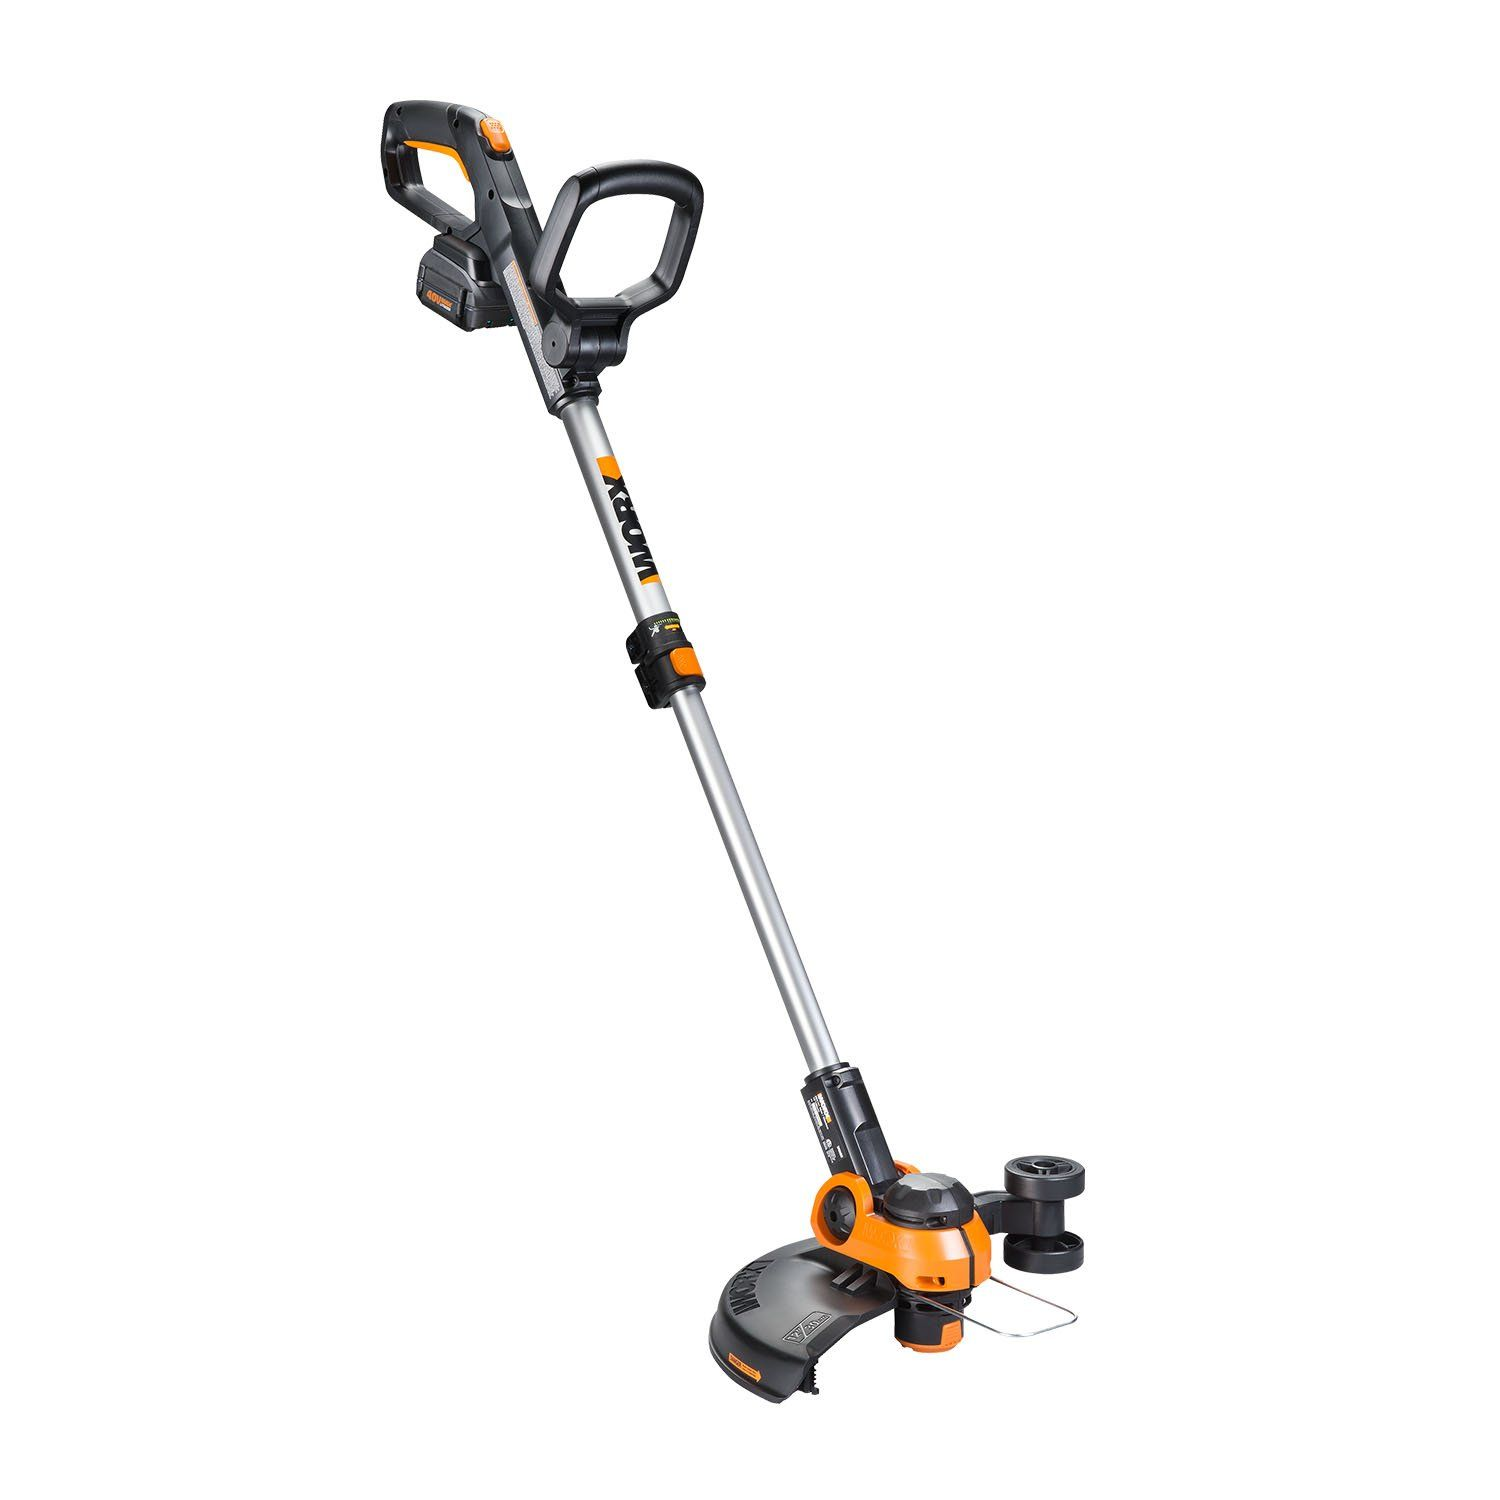 Worx Wg180 40 Volt Gt3 0 Trimmer With Battery And Charger Included Cordless Grass Trimer Orange And Black Trimmers Cordless Electric Leaf Blowers